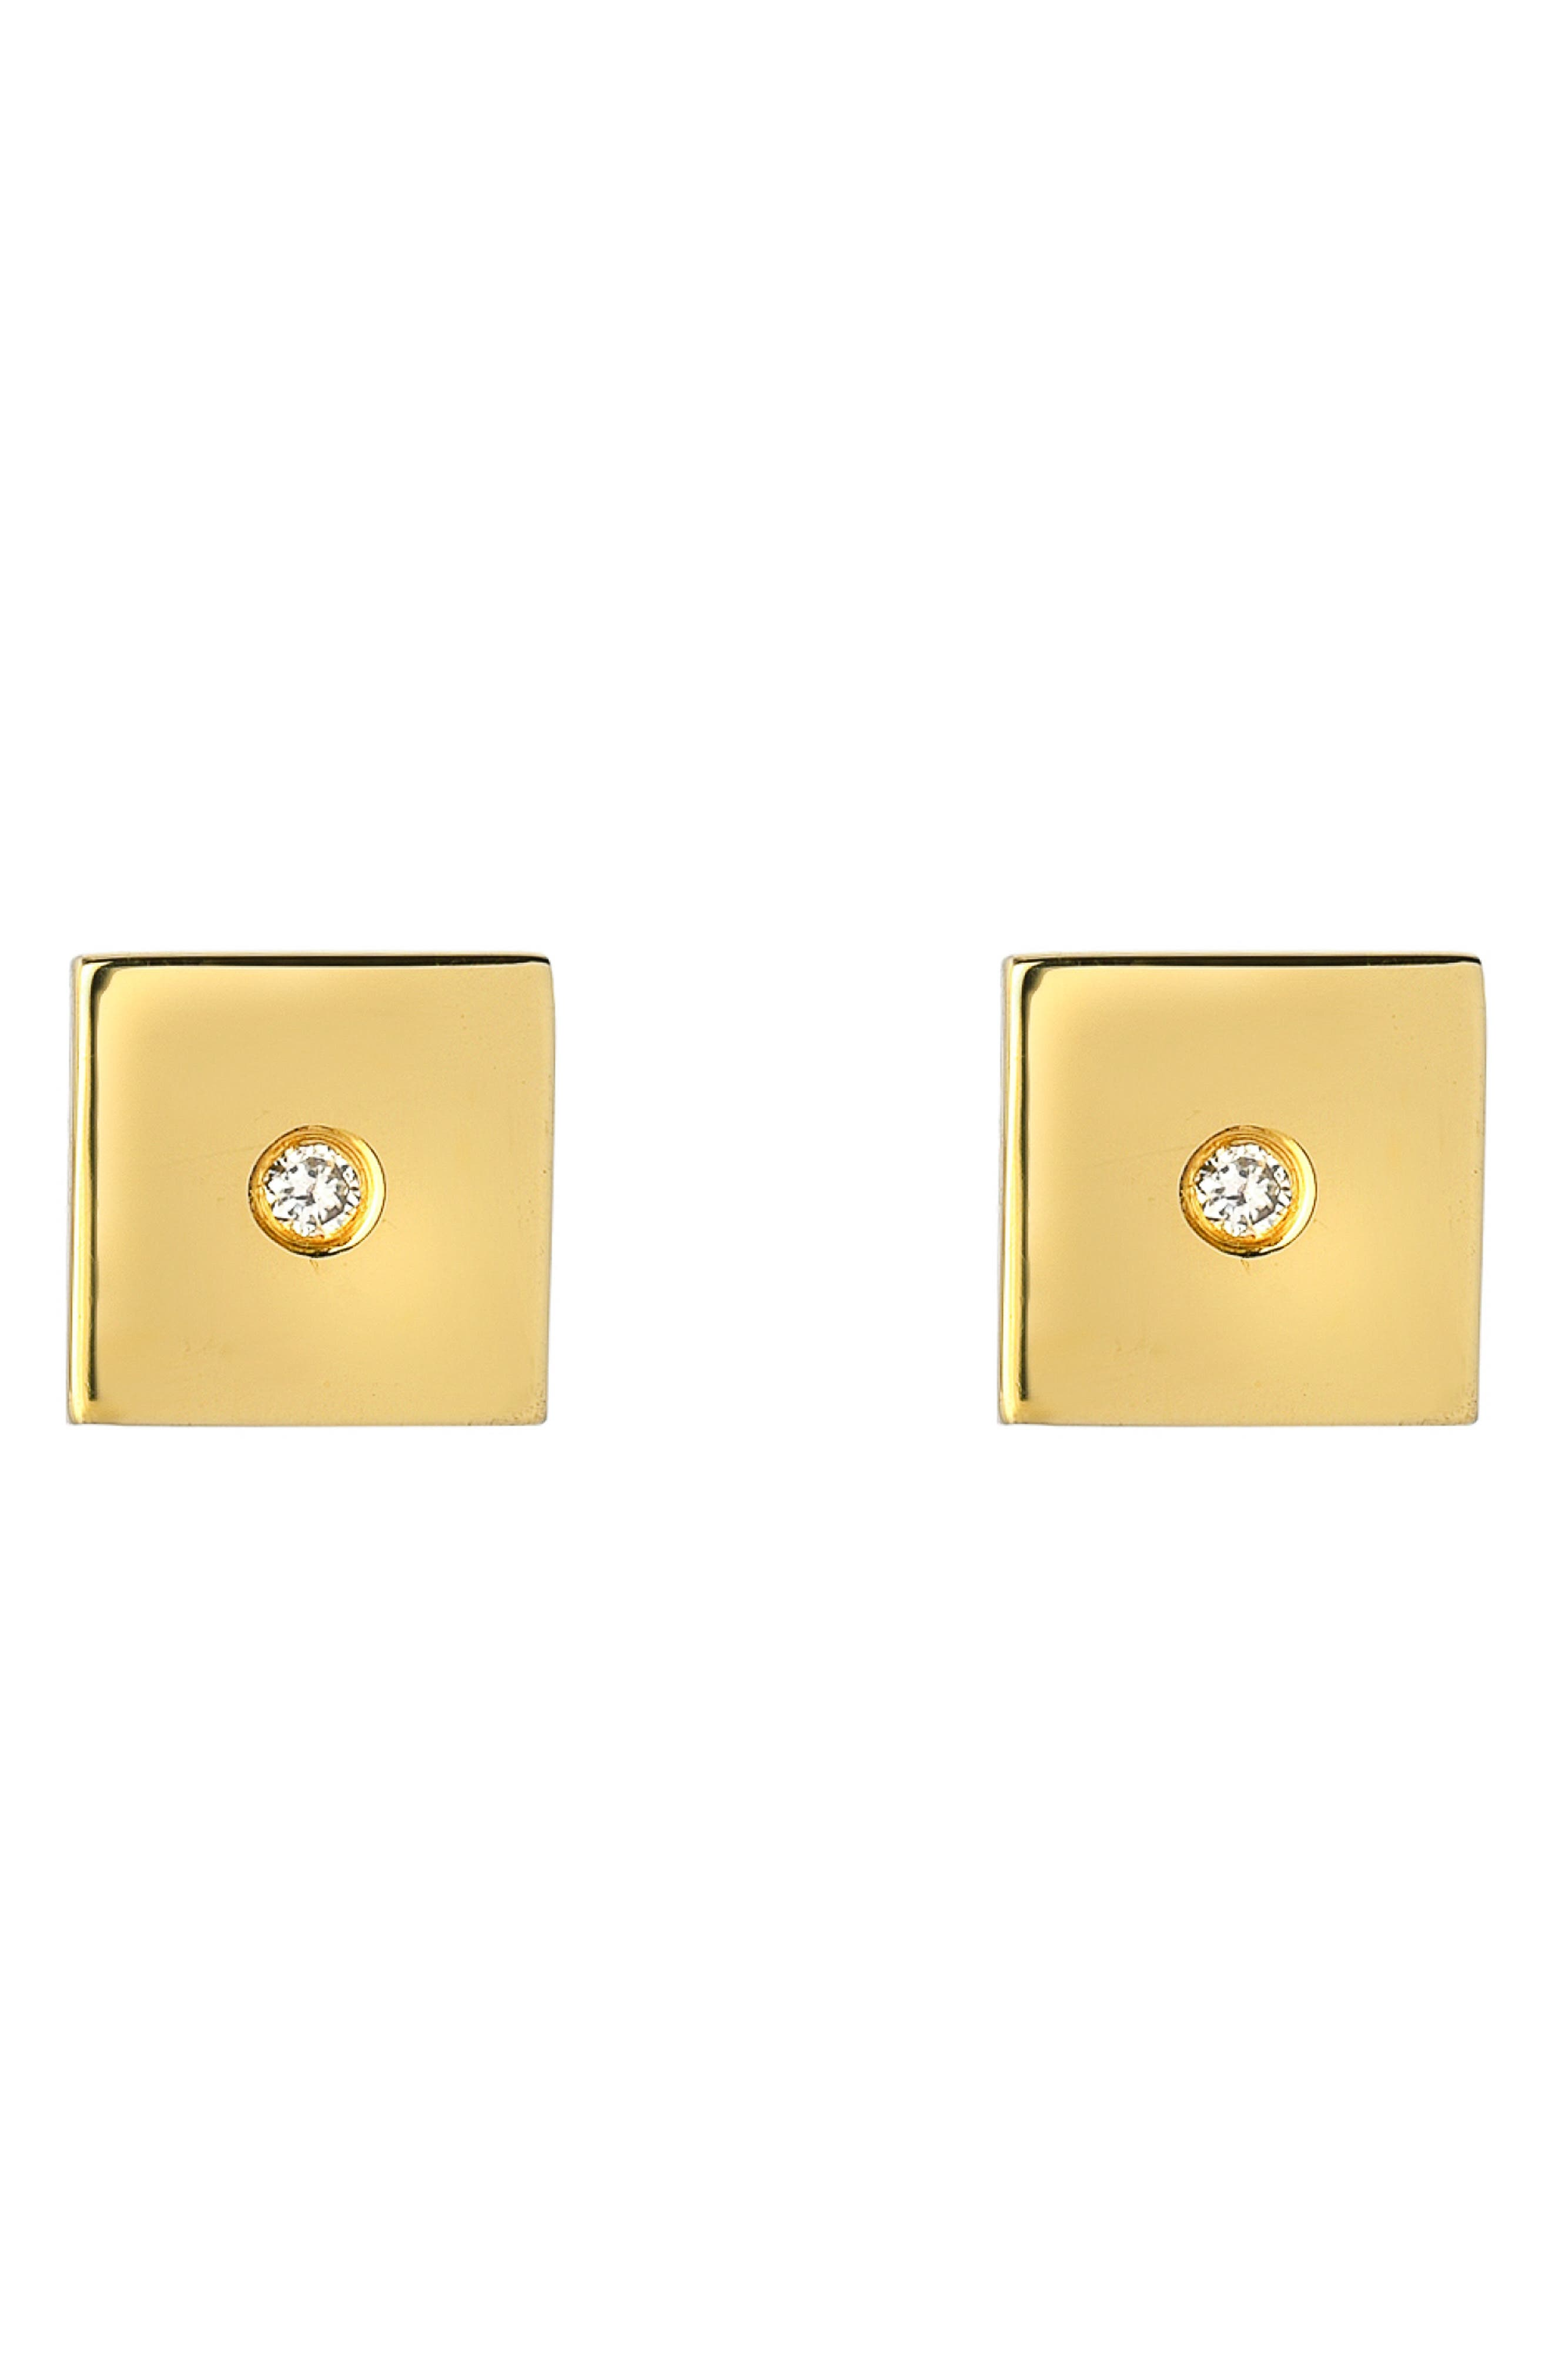 Forever Collection - Square Diamond Stud Earrings,                             Main thumbnail 1, color,                             YELLOW GOLD